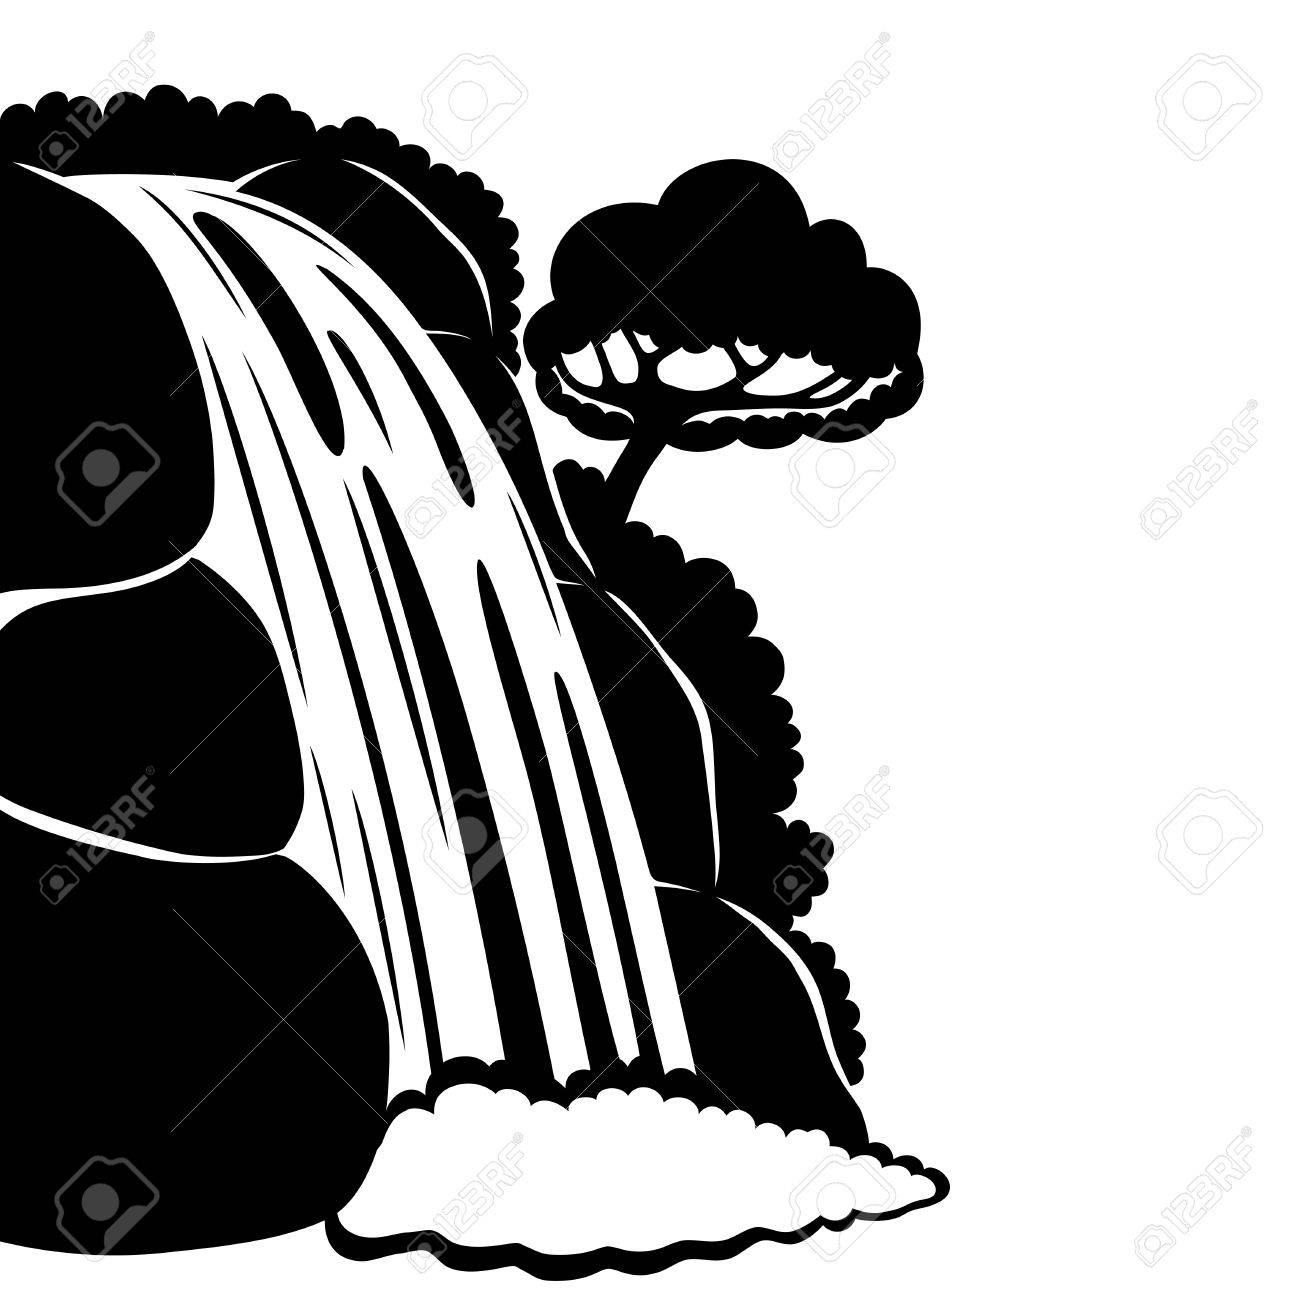 590 Waterfall free clipart.